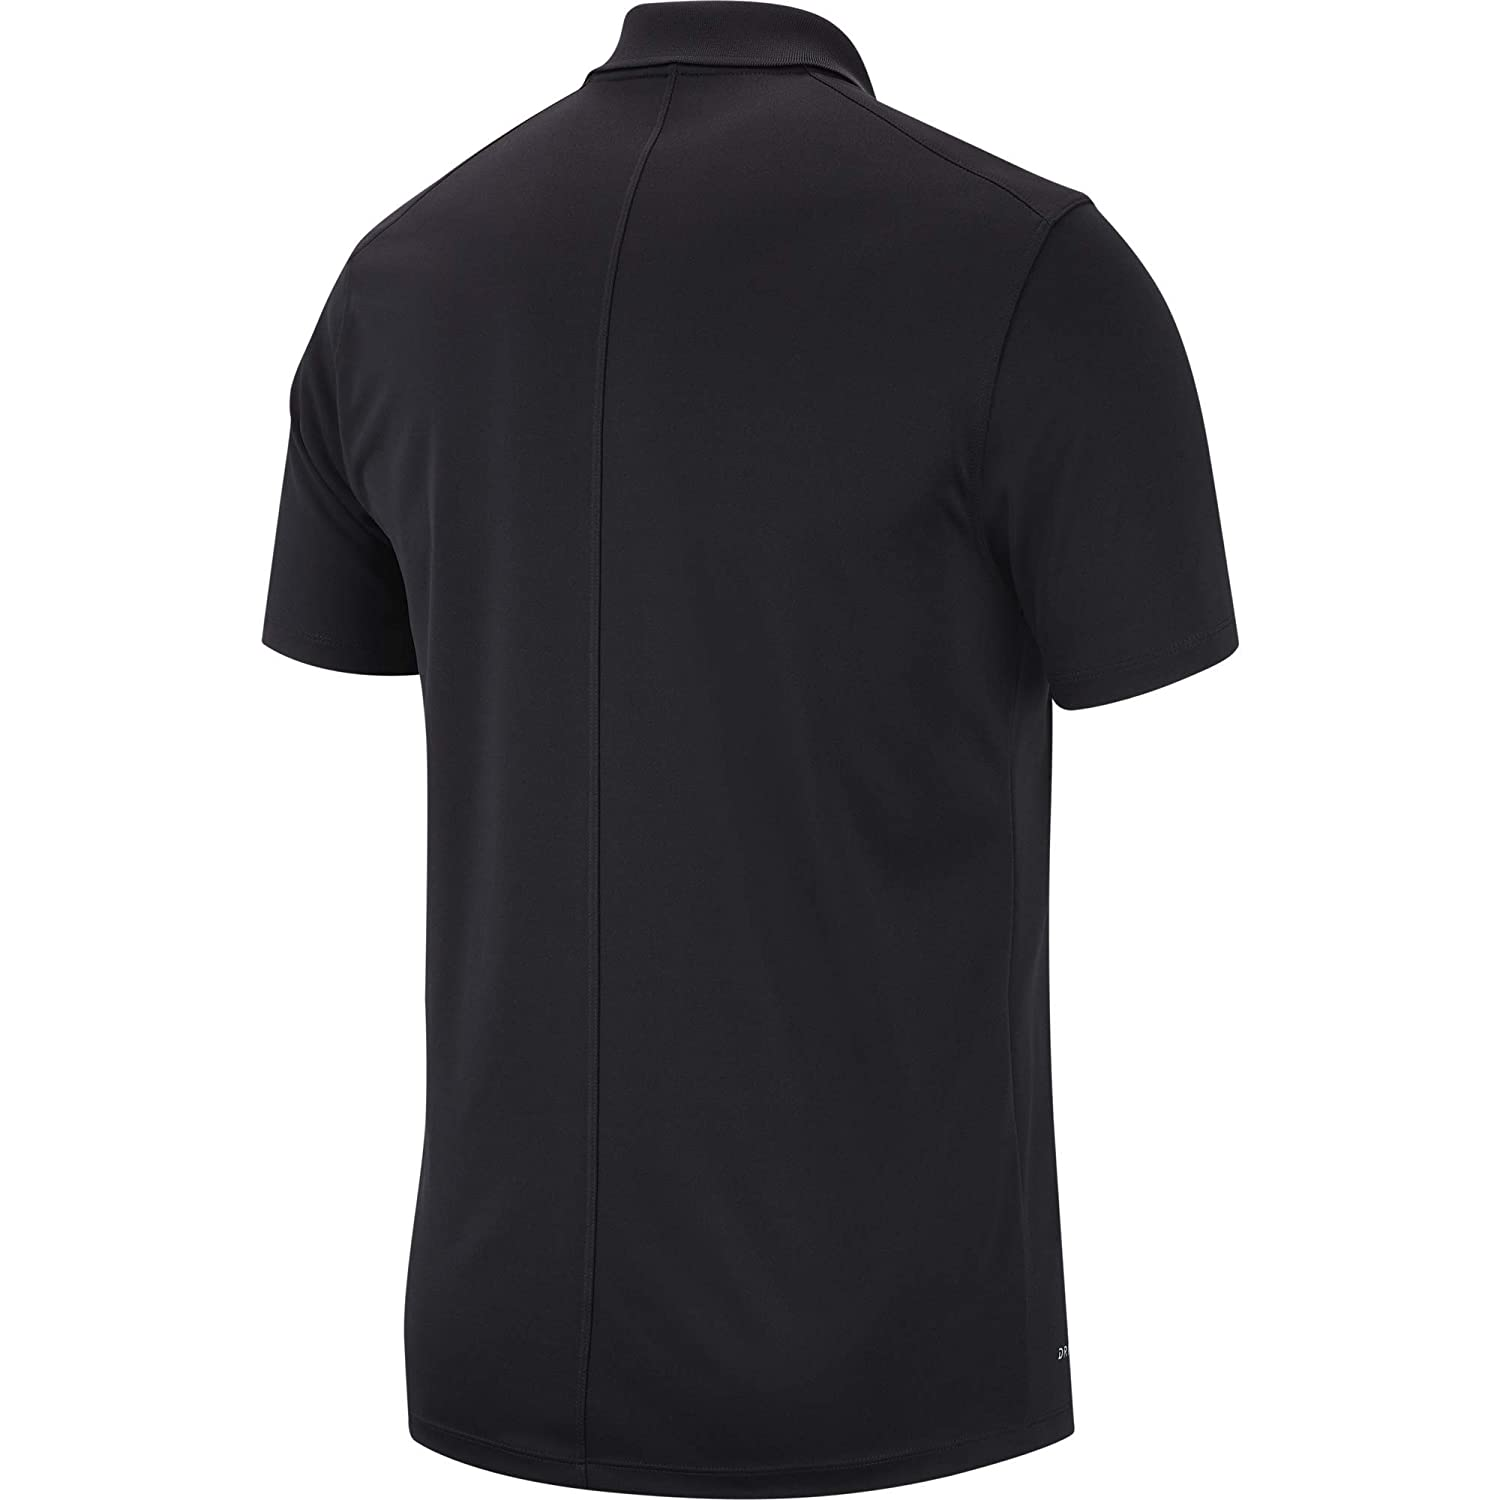 6ab05e0a Amazon.com: Nike Men's Dry Victory Golf Polo: Clothing